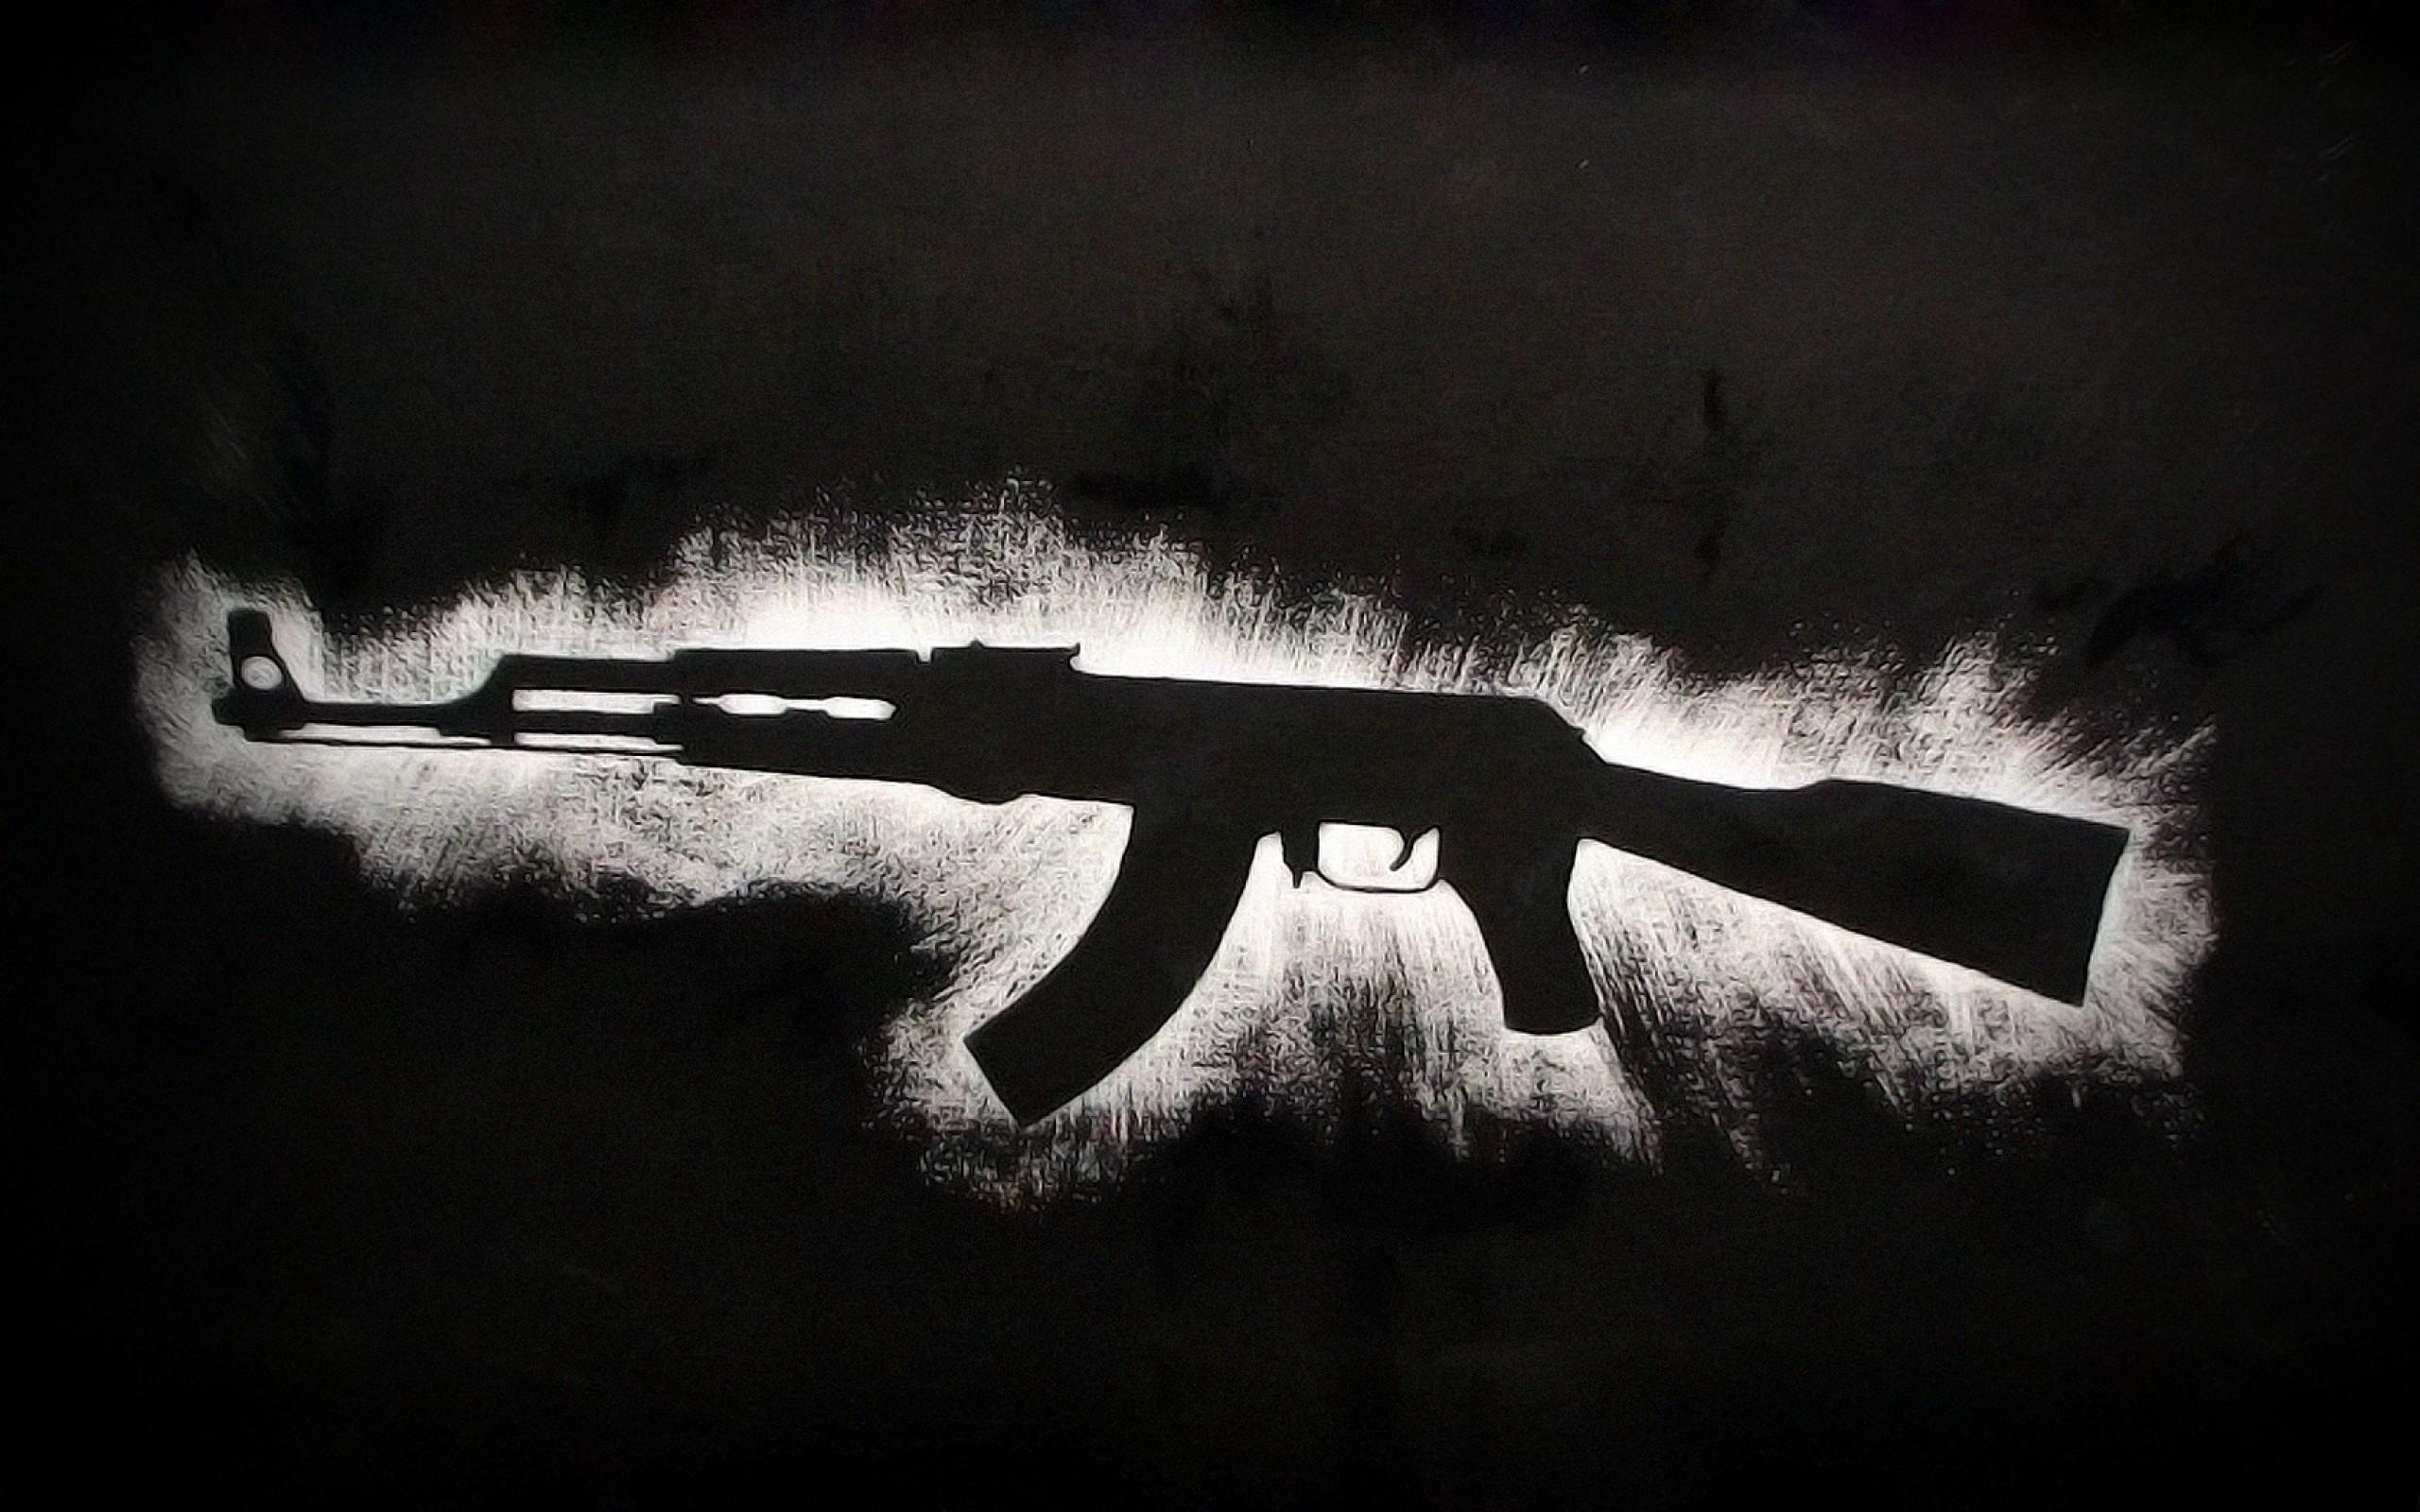 AK 47 Gun Wallpaper